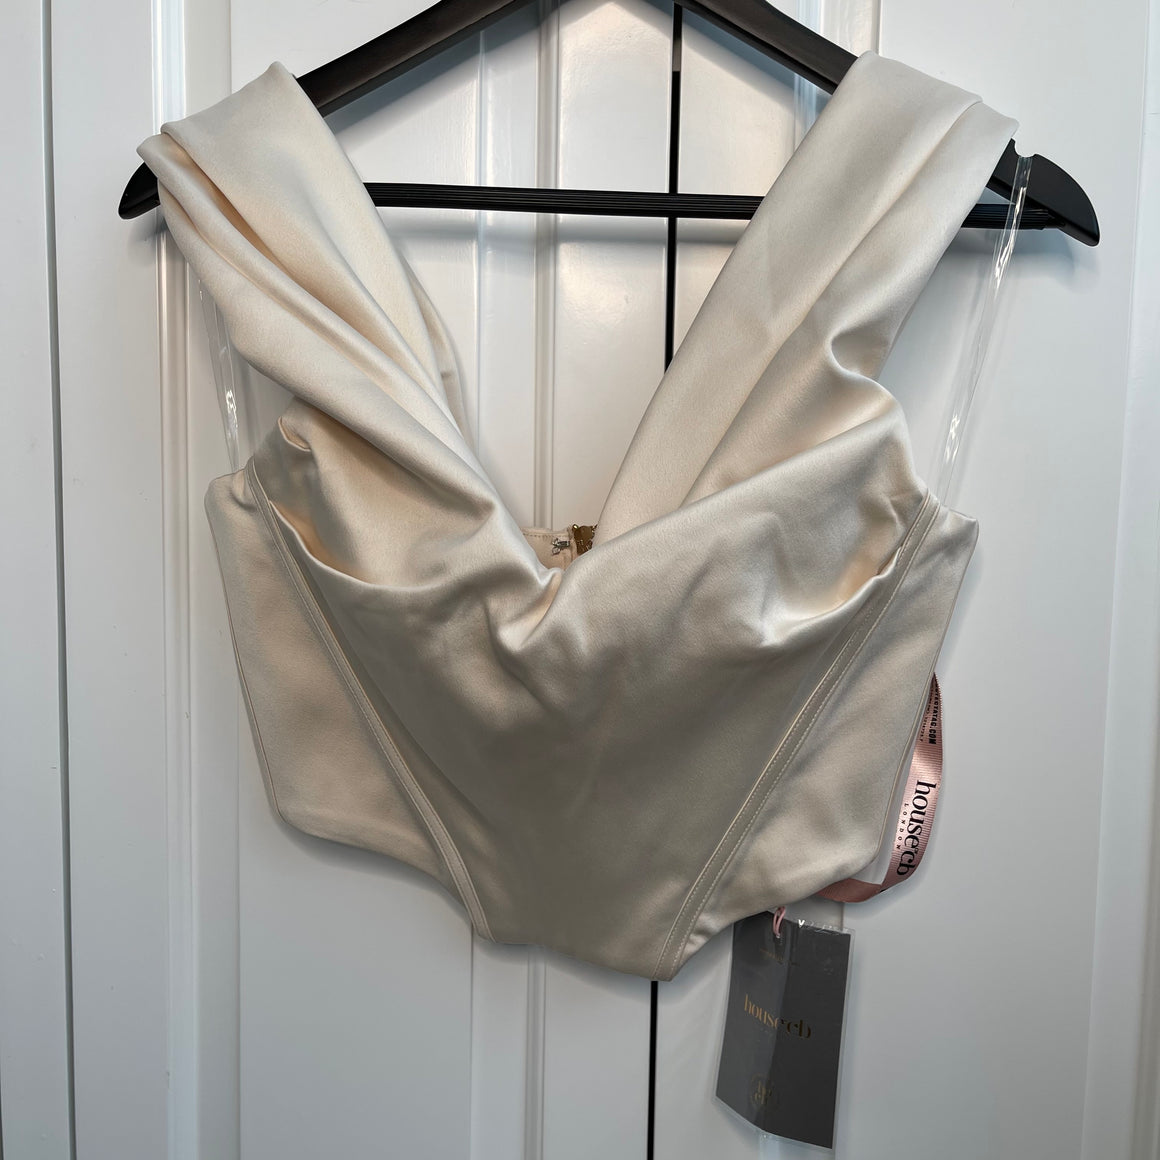 Cream Satin House Of CB Bustier Top